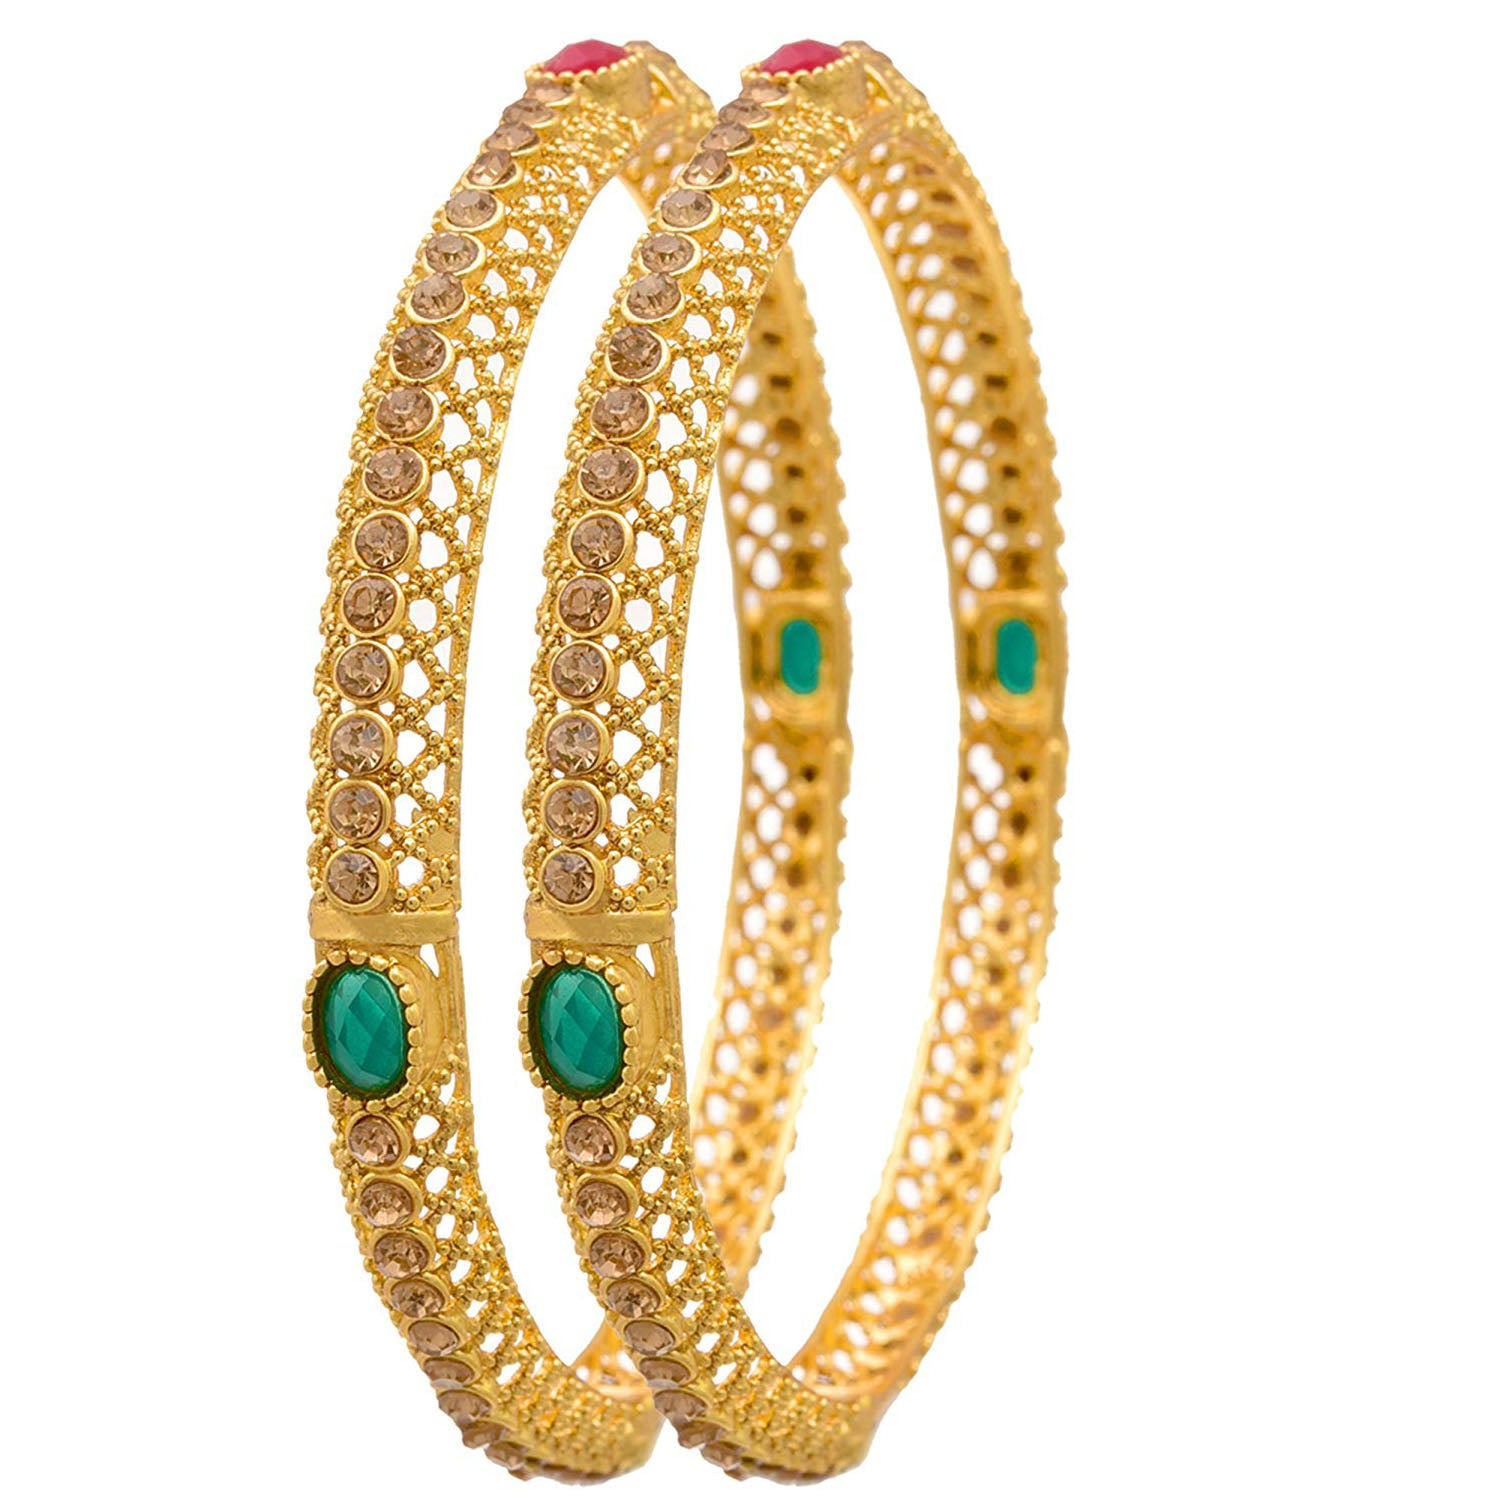 Jewellery for Less 1g Gold Plated Red Green Stone Bangle Set with Austrian Diamonds for Women (Champagne)